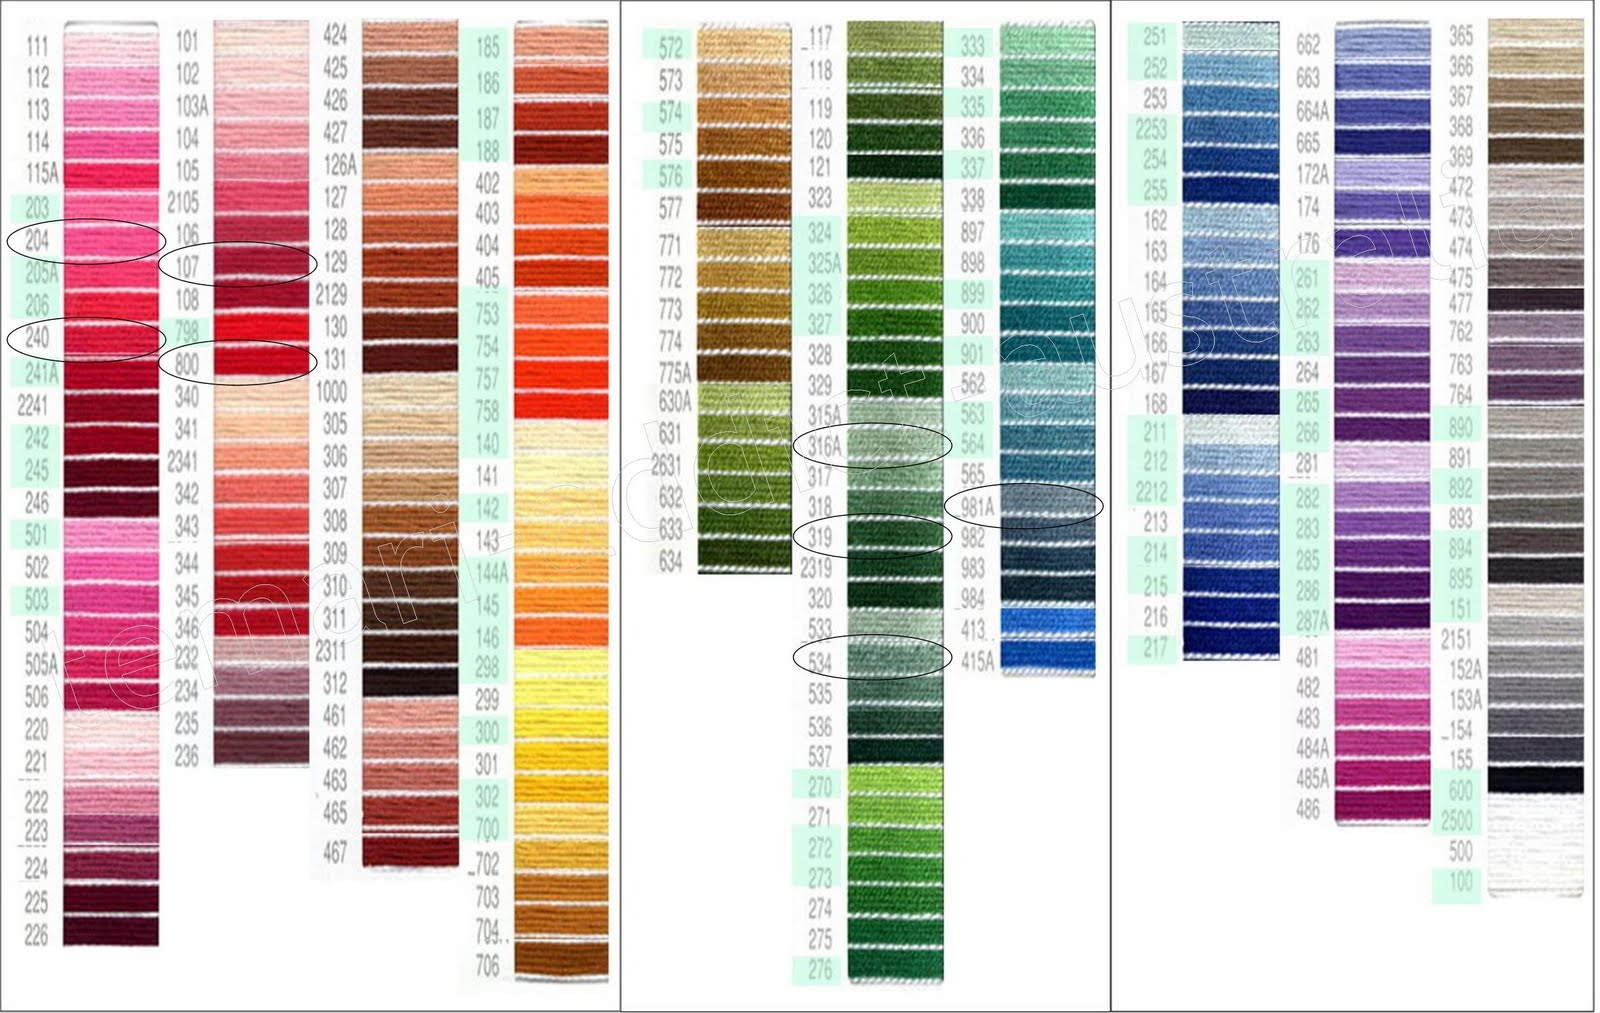 cosmo thread color chart related keywords